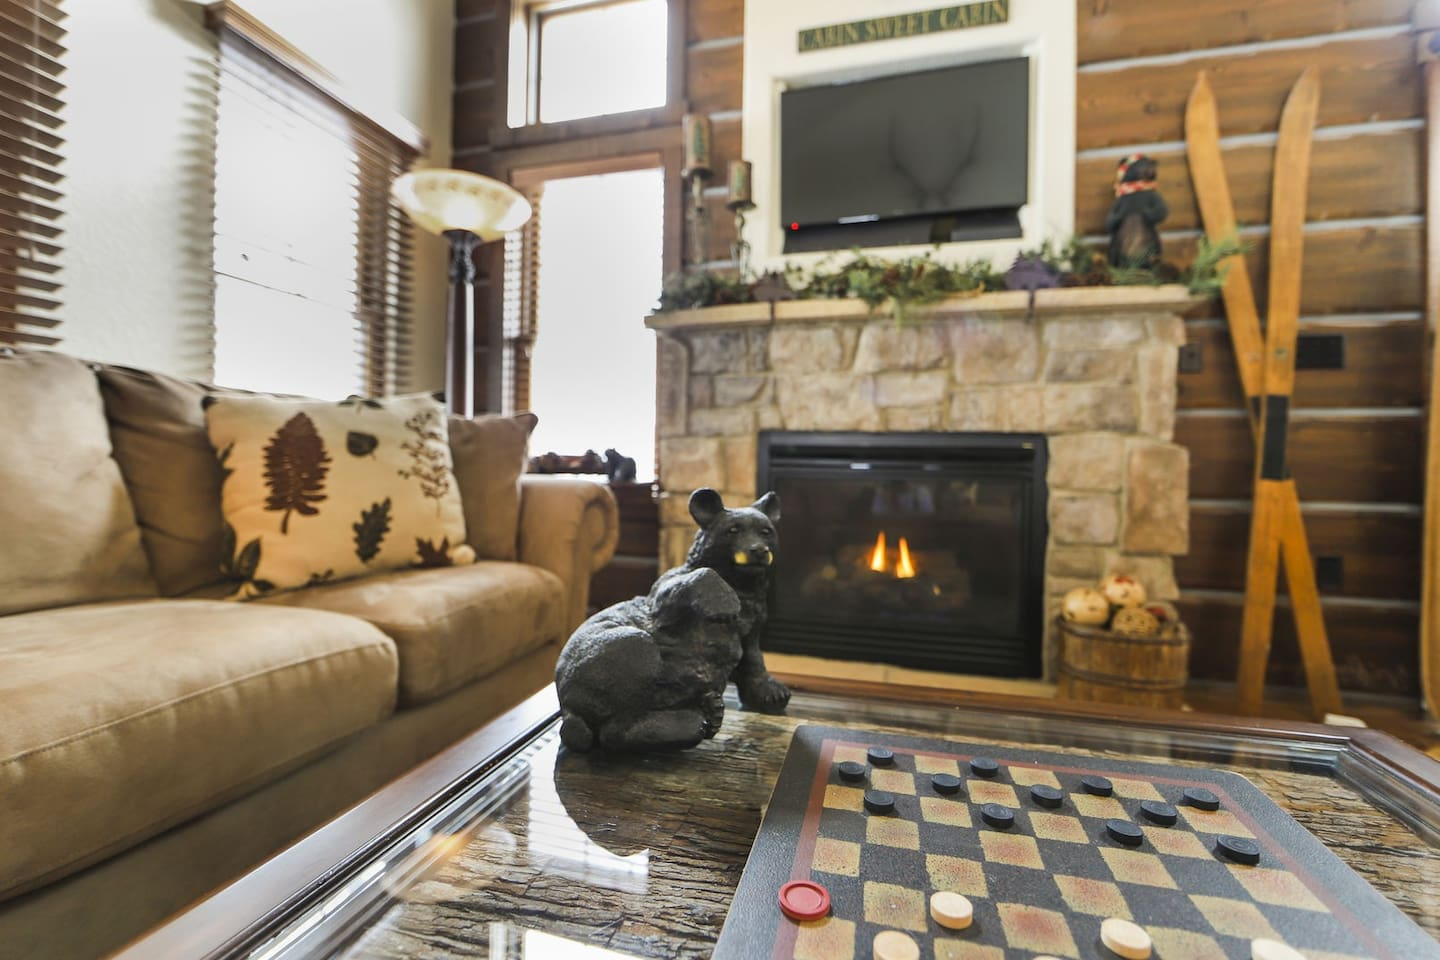 Sit down after a day on the slopes at the fireplace and relax.